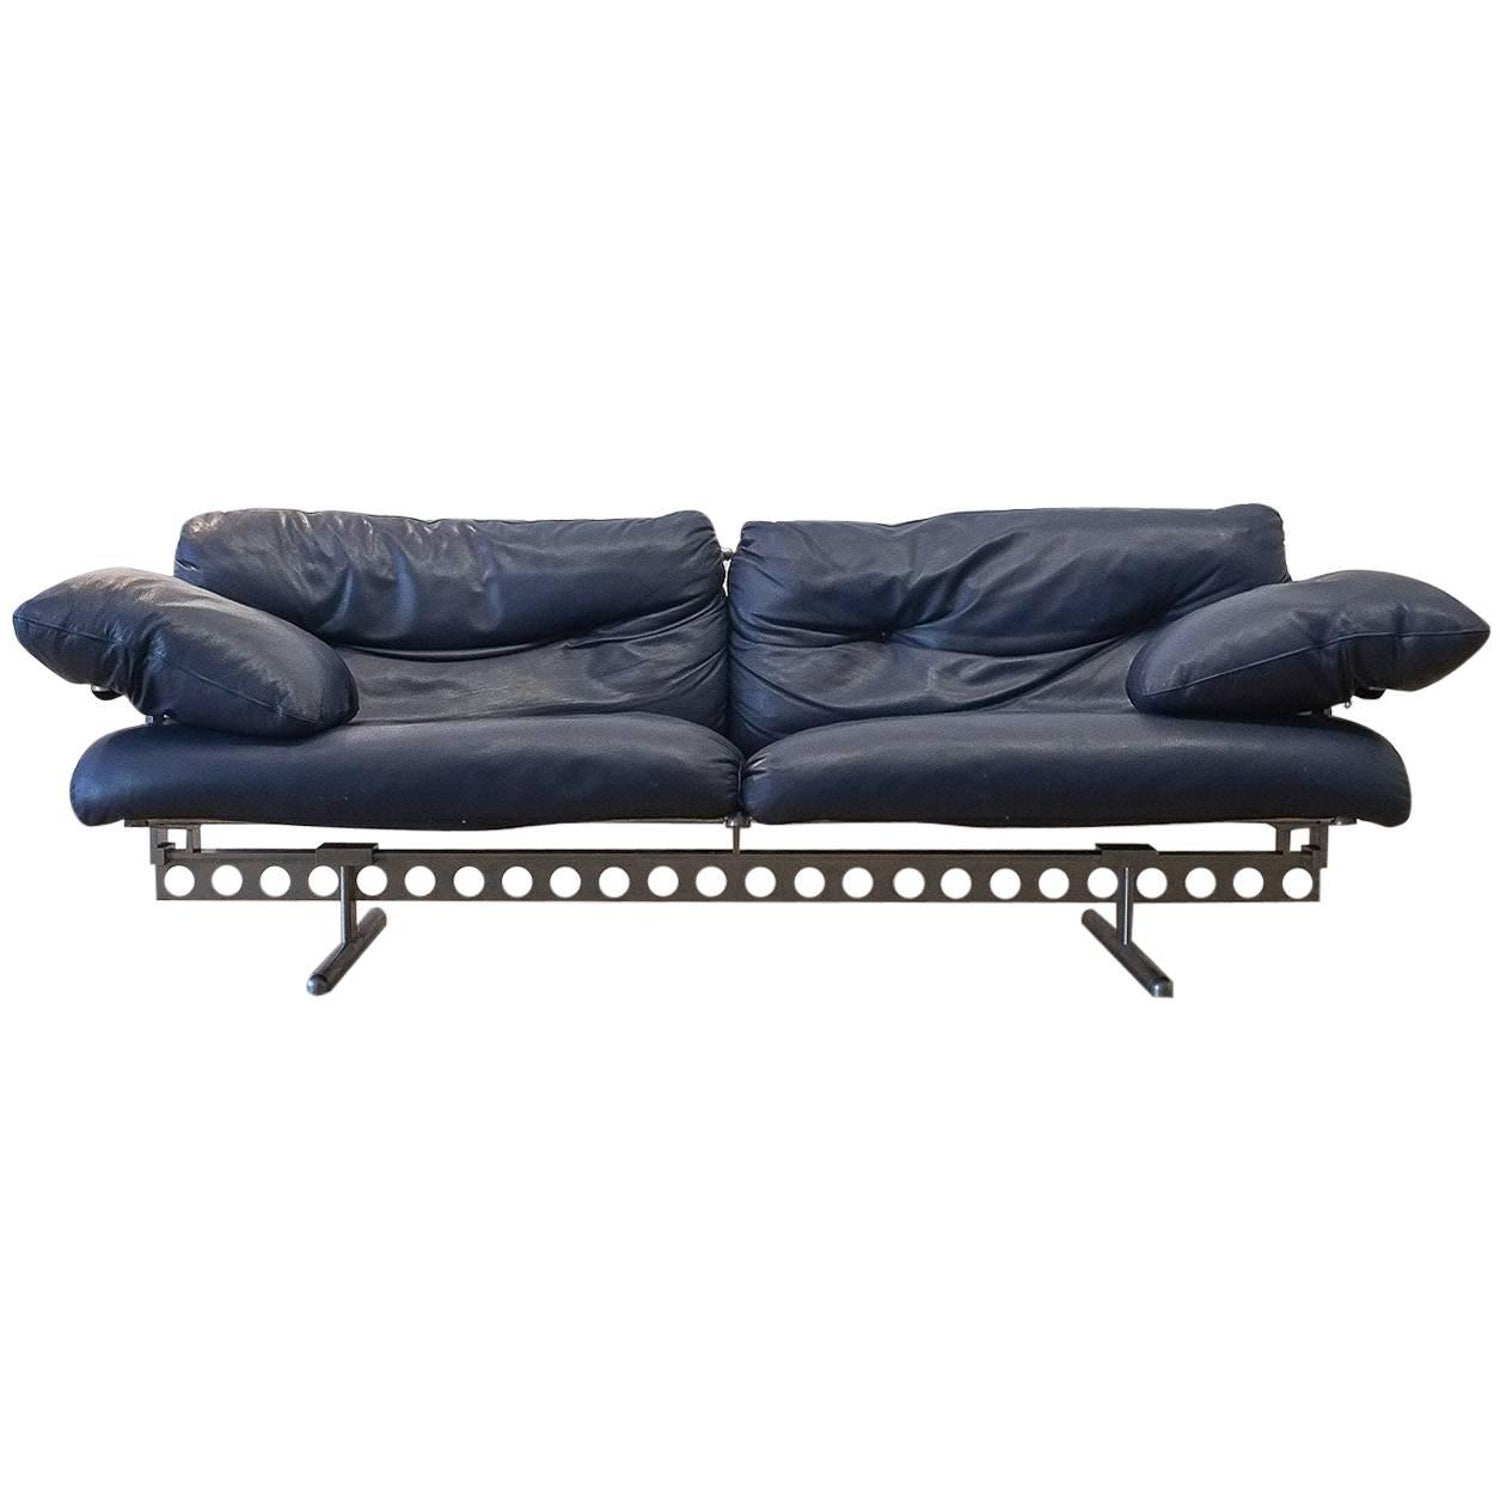 Beautiful poltrona chaise longue gallery for Chaise longue frau